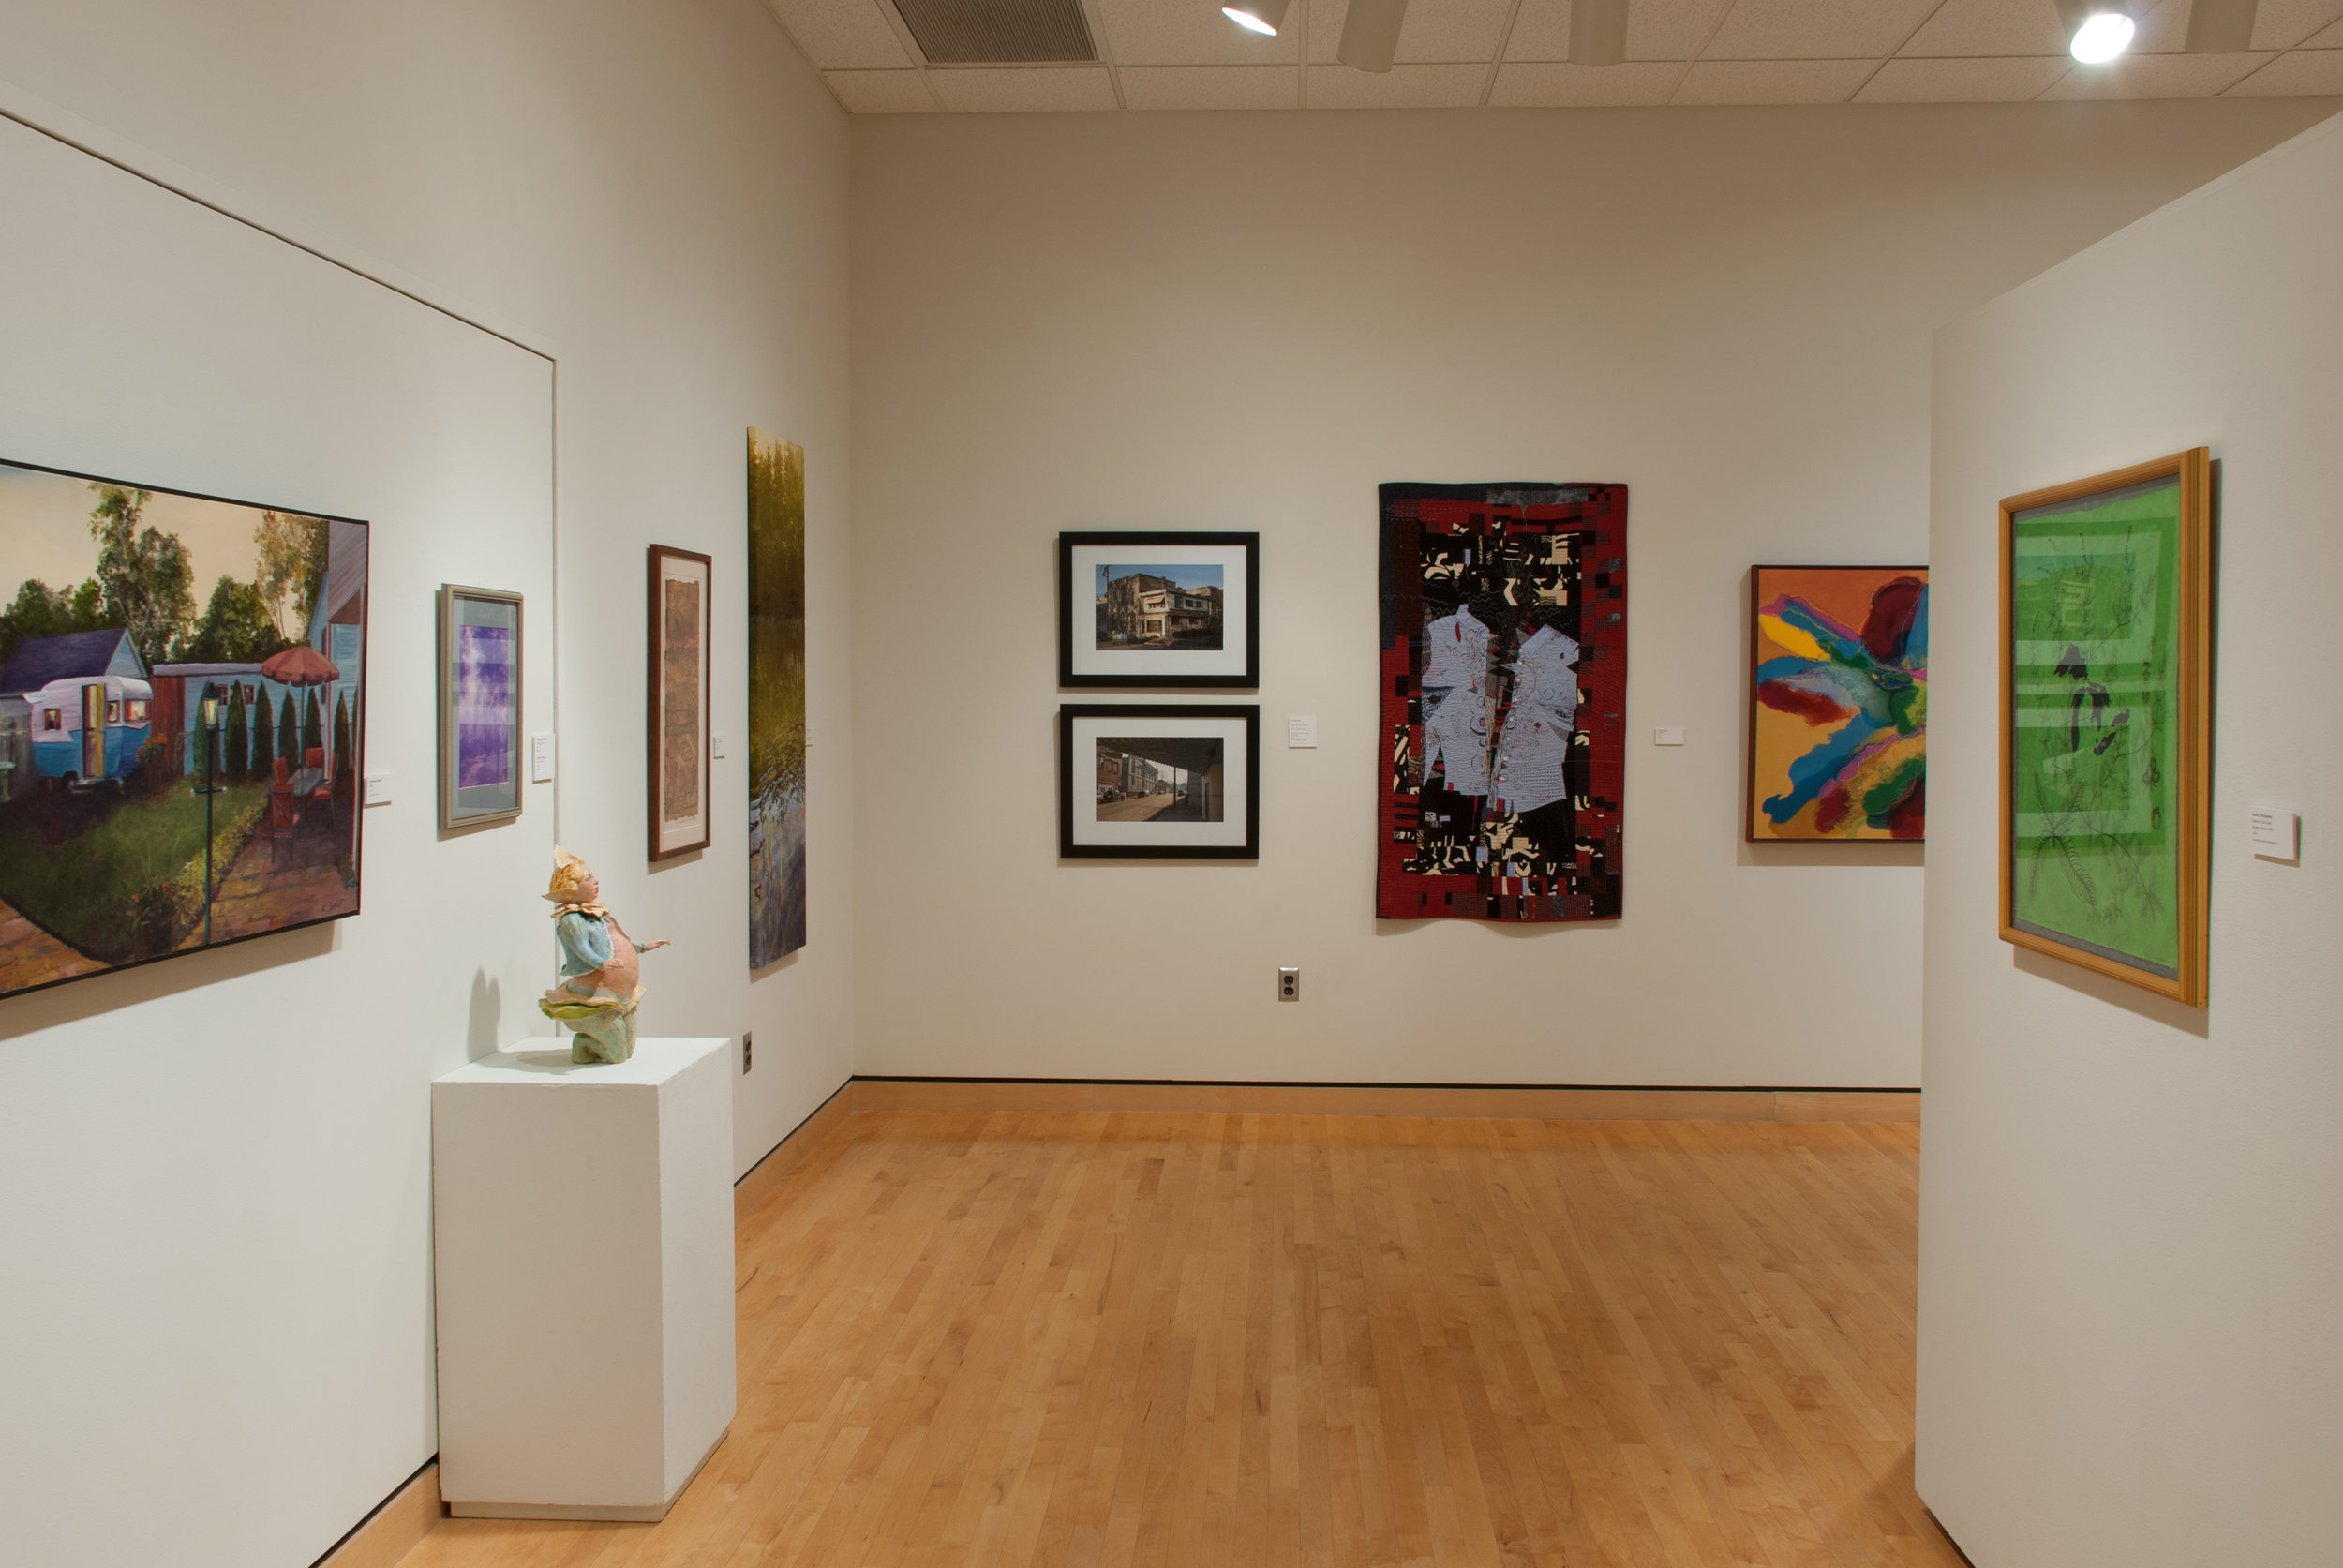 My piece,   Outspoken  , is included with the works of 20 IWCA members at the South Bend Museum of Art.